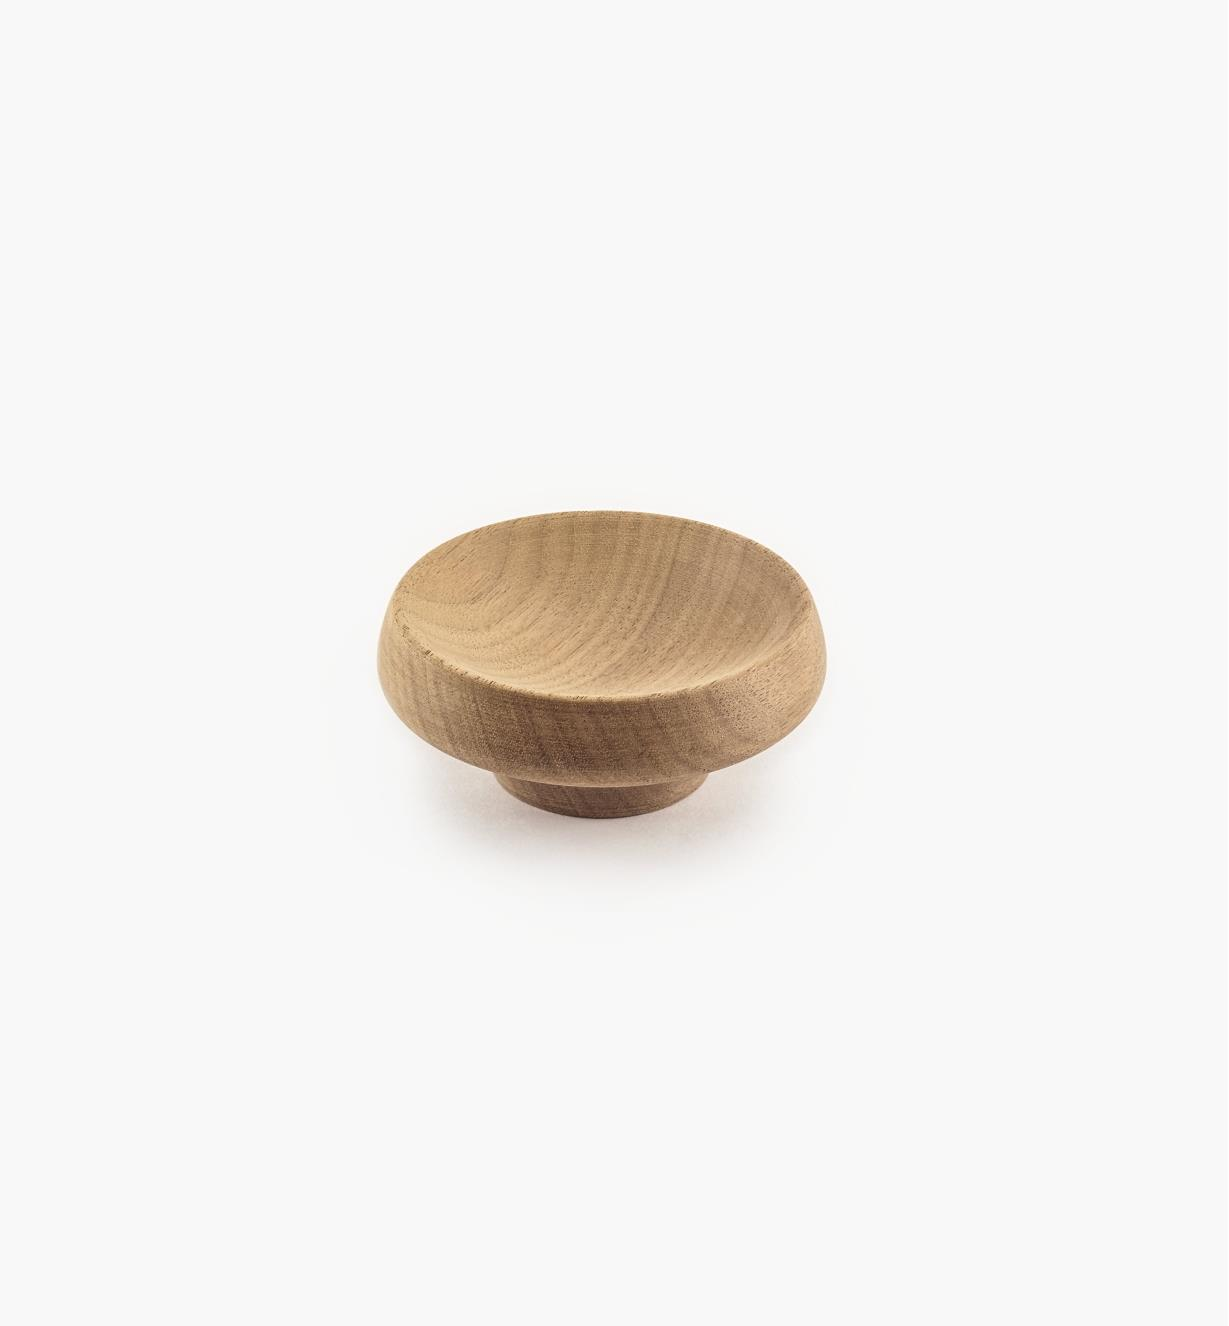 02G2028 - 65mm x 28mm Cork Danish Walnut Knob